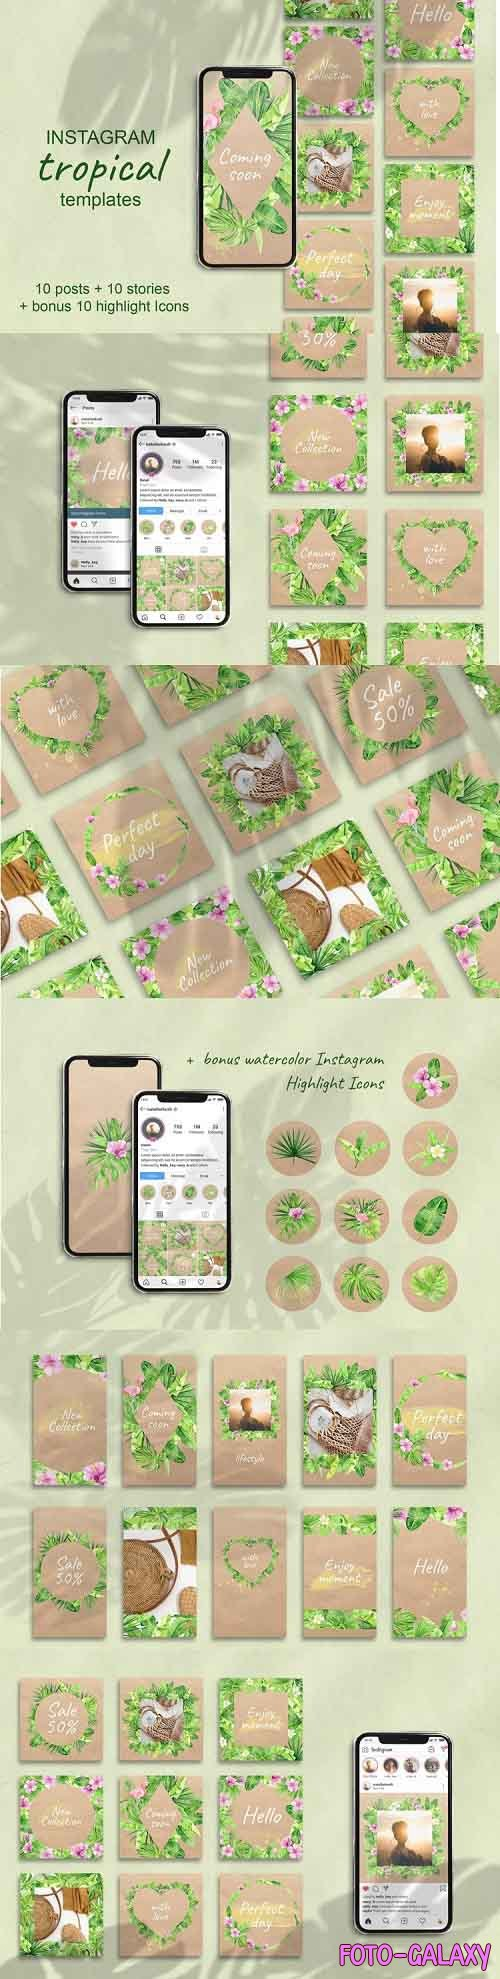 Tropical Instagram Template. Stories, Posts and Highlights - 897488